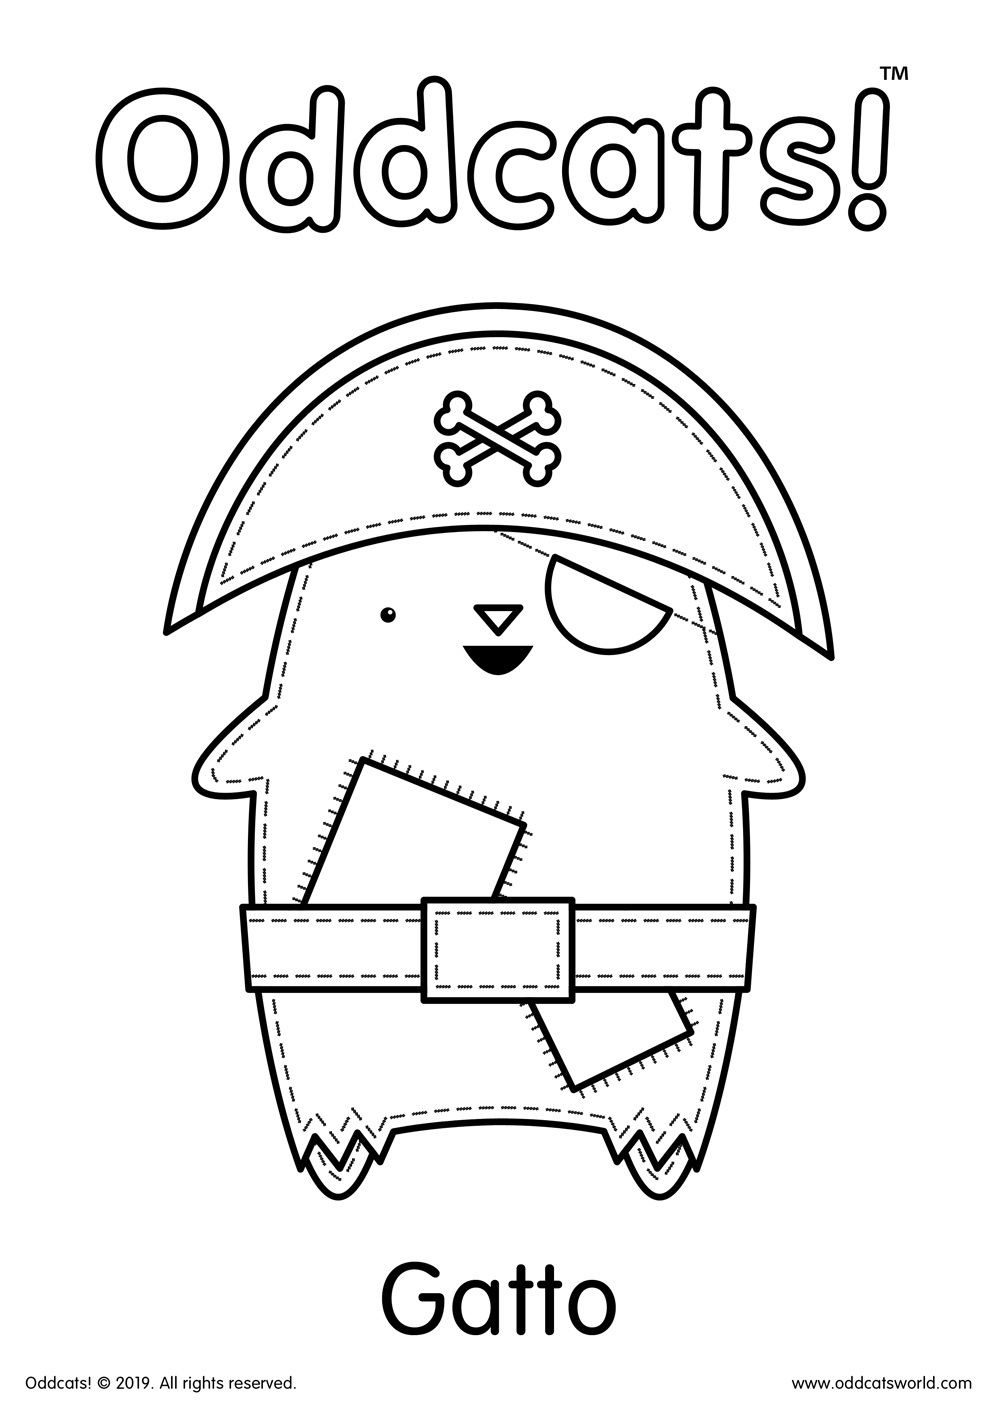 oddcats_colouring_gatto_thumb2.jpg